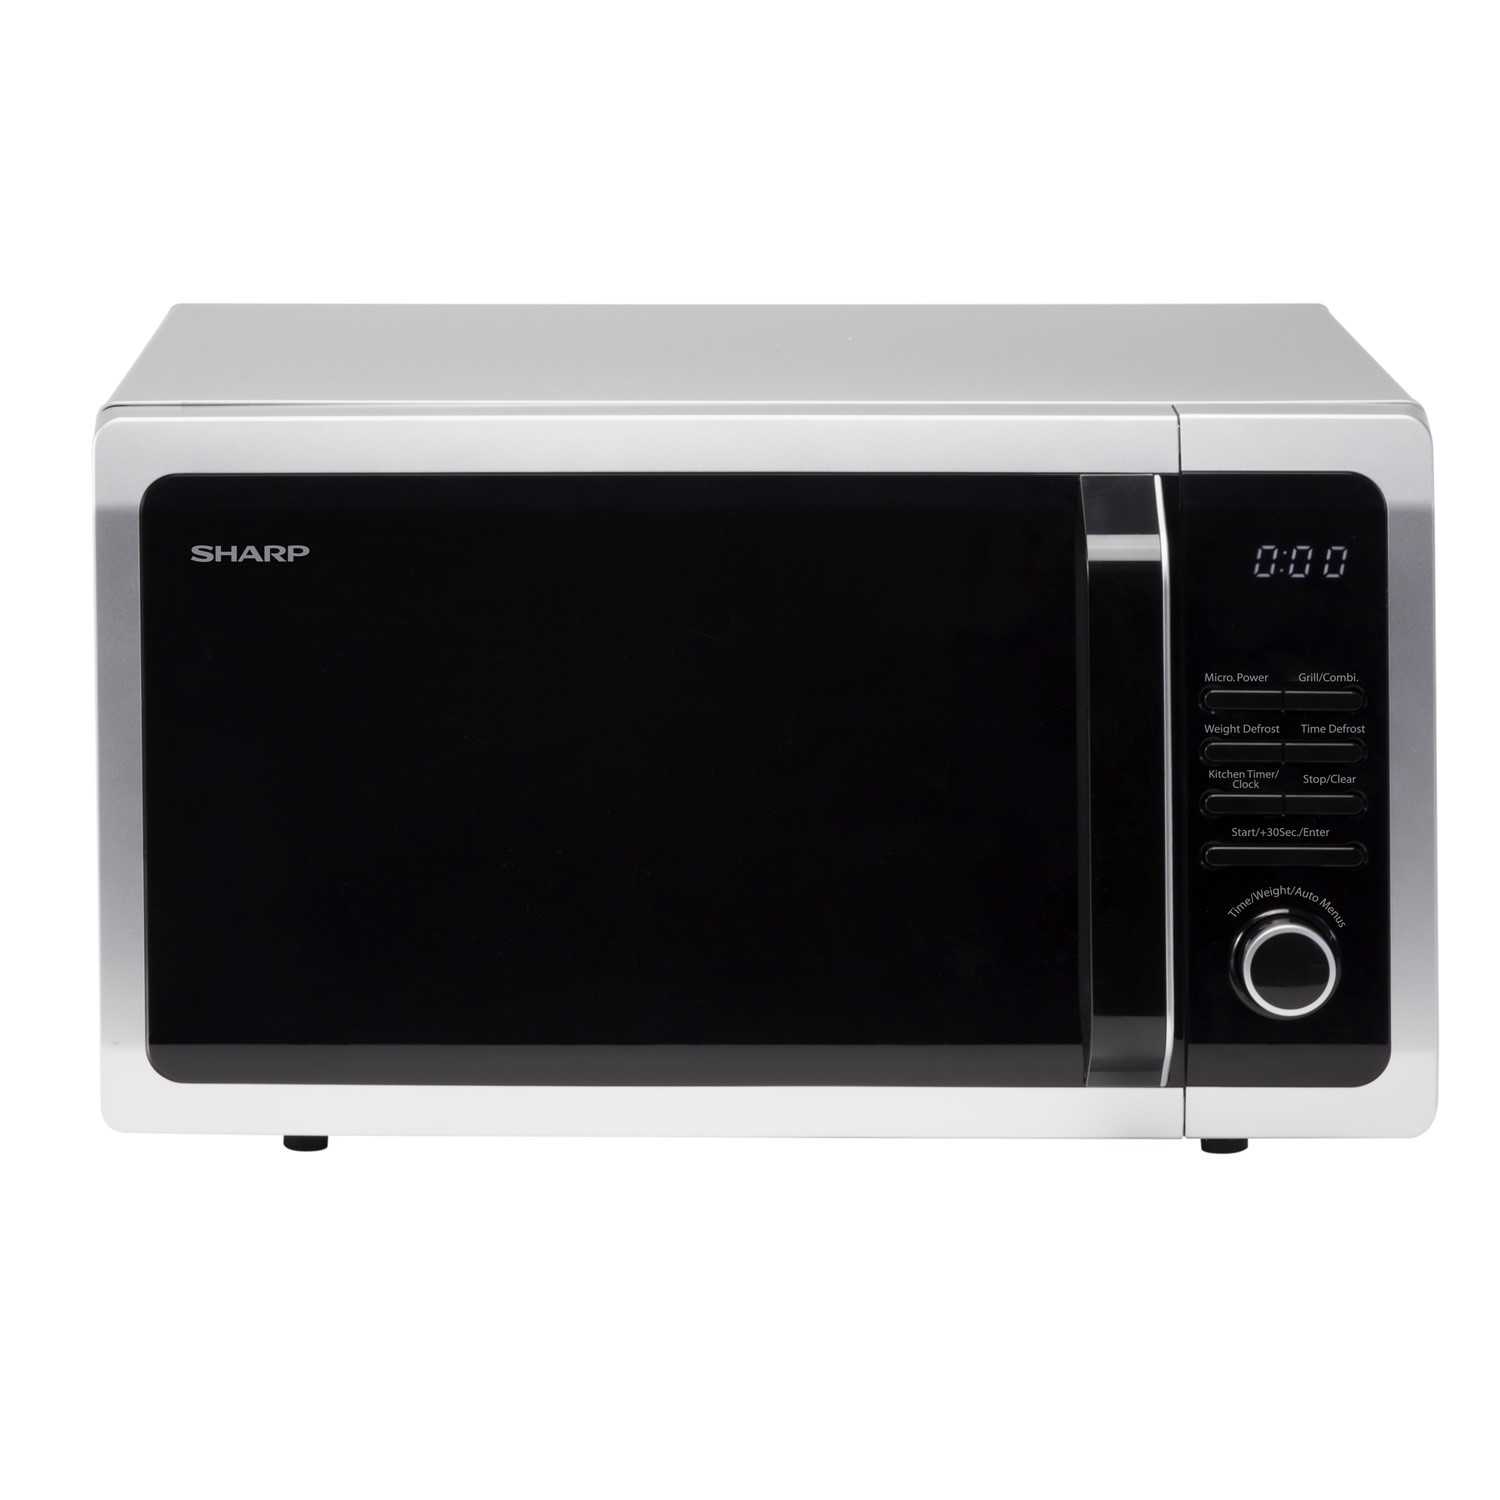 sharp r764slm 25l 900w freestanding microwave with grill. Black Bedroom Furniture Sets. Home Design Ideas